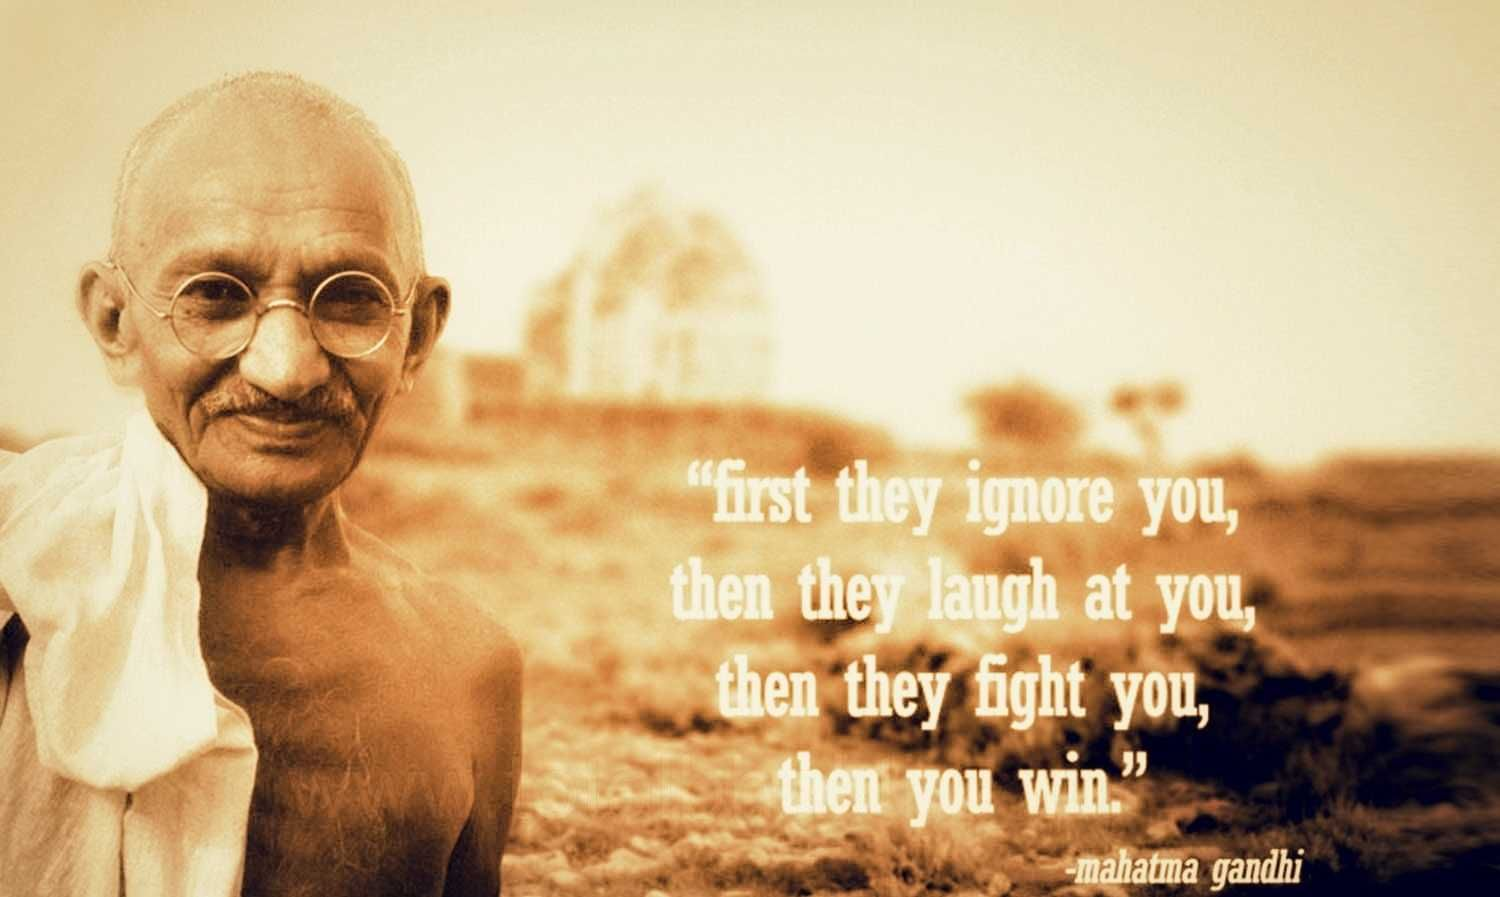 21 mahatma gandhi quotes hitfull com incredible 21 mahatma gandhi quotes hitfull com